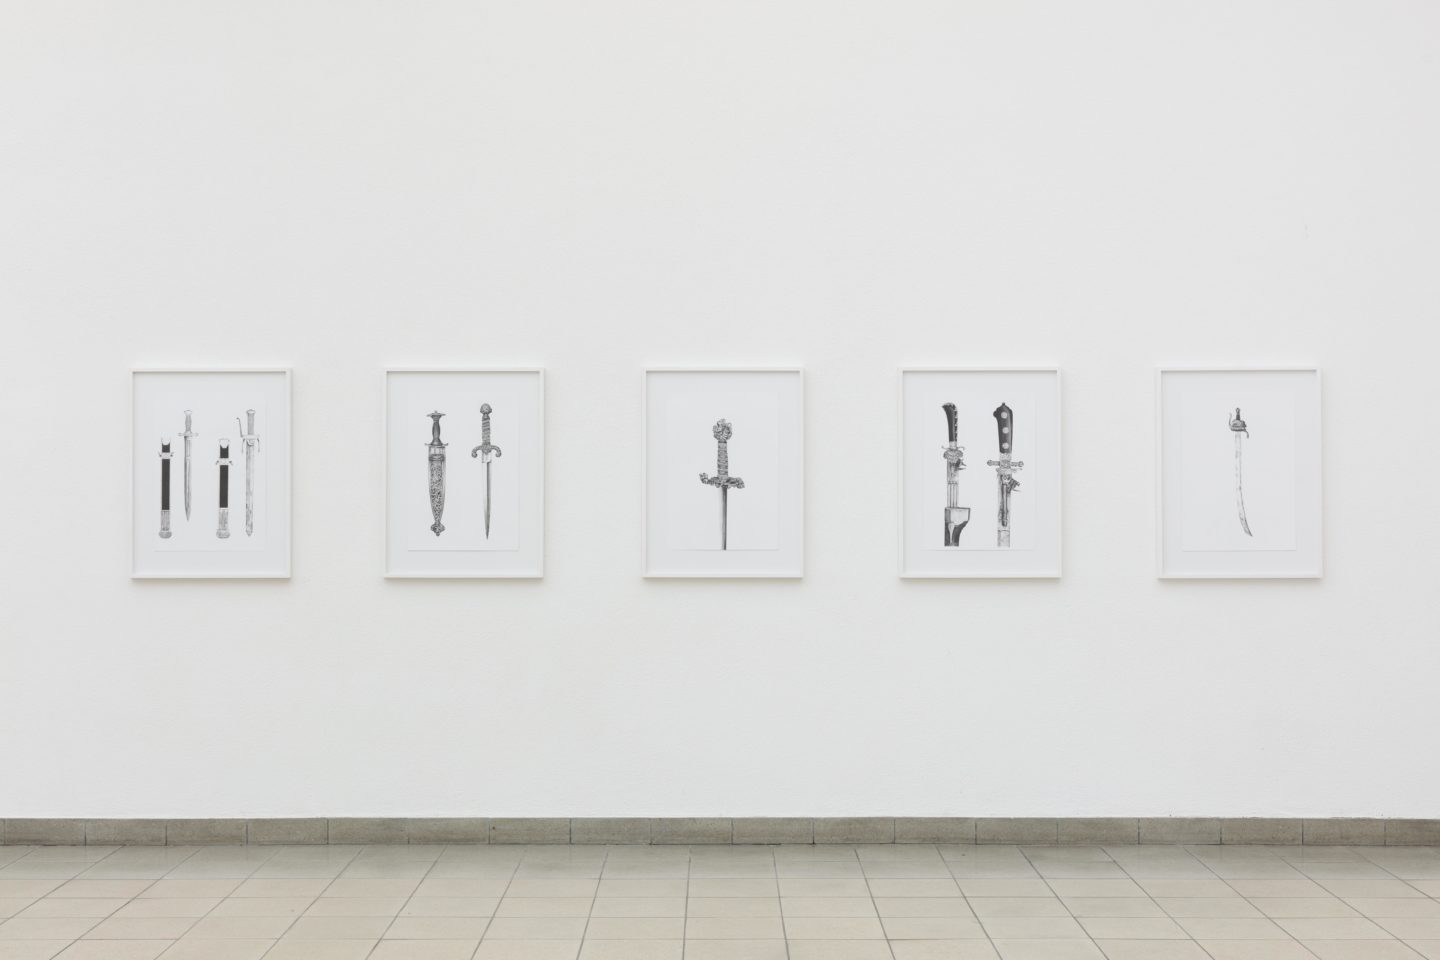 """Exhibition View Marta Riniker-Radich """"A highly sophisticated security blanket, 2015"""" at Kunsthaus Glarus / Photo: Gunnar Meier / Courtesy: the artist"""